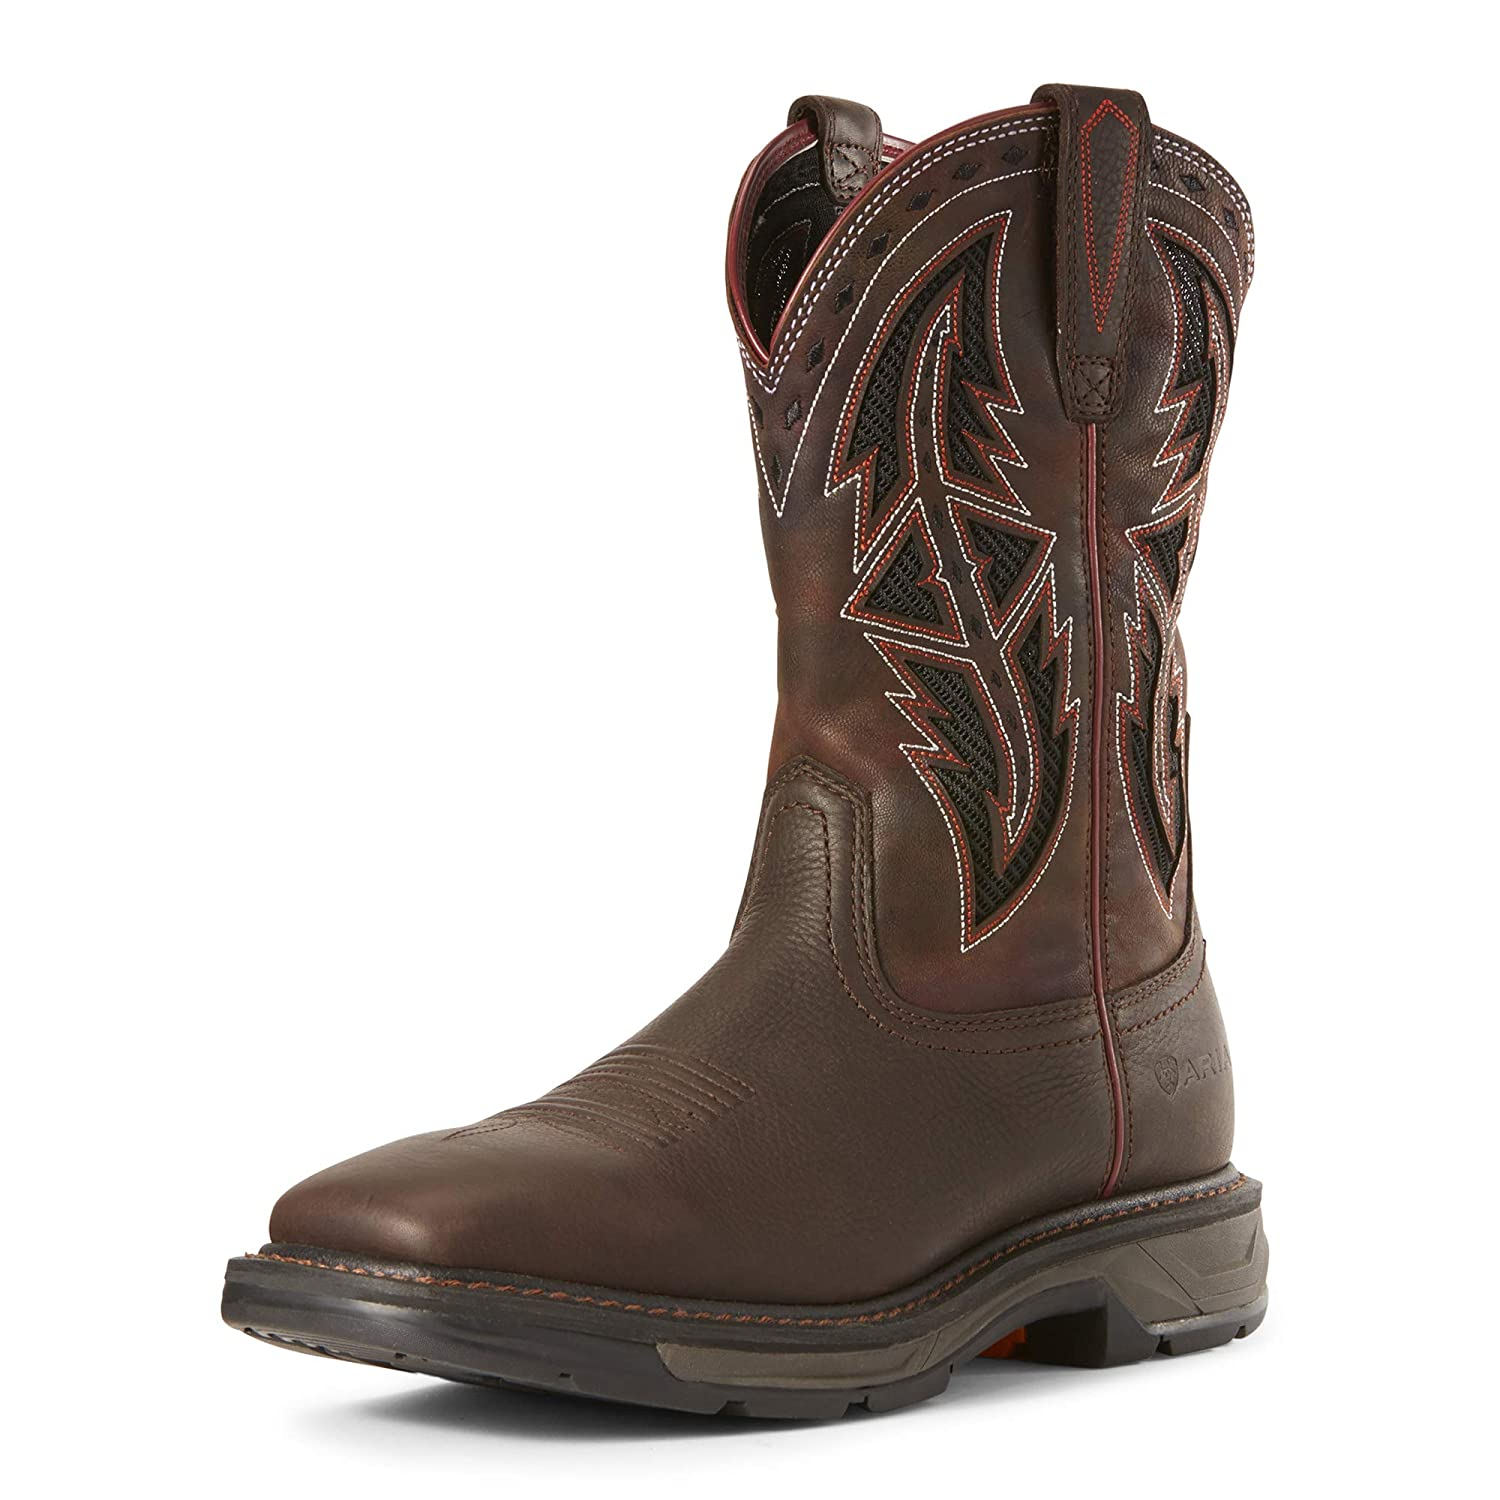 59ae9dc8b99 Ariat Men's Spitfire Work Boot